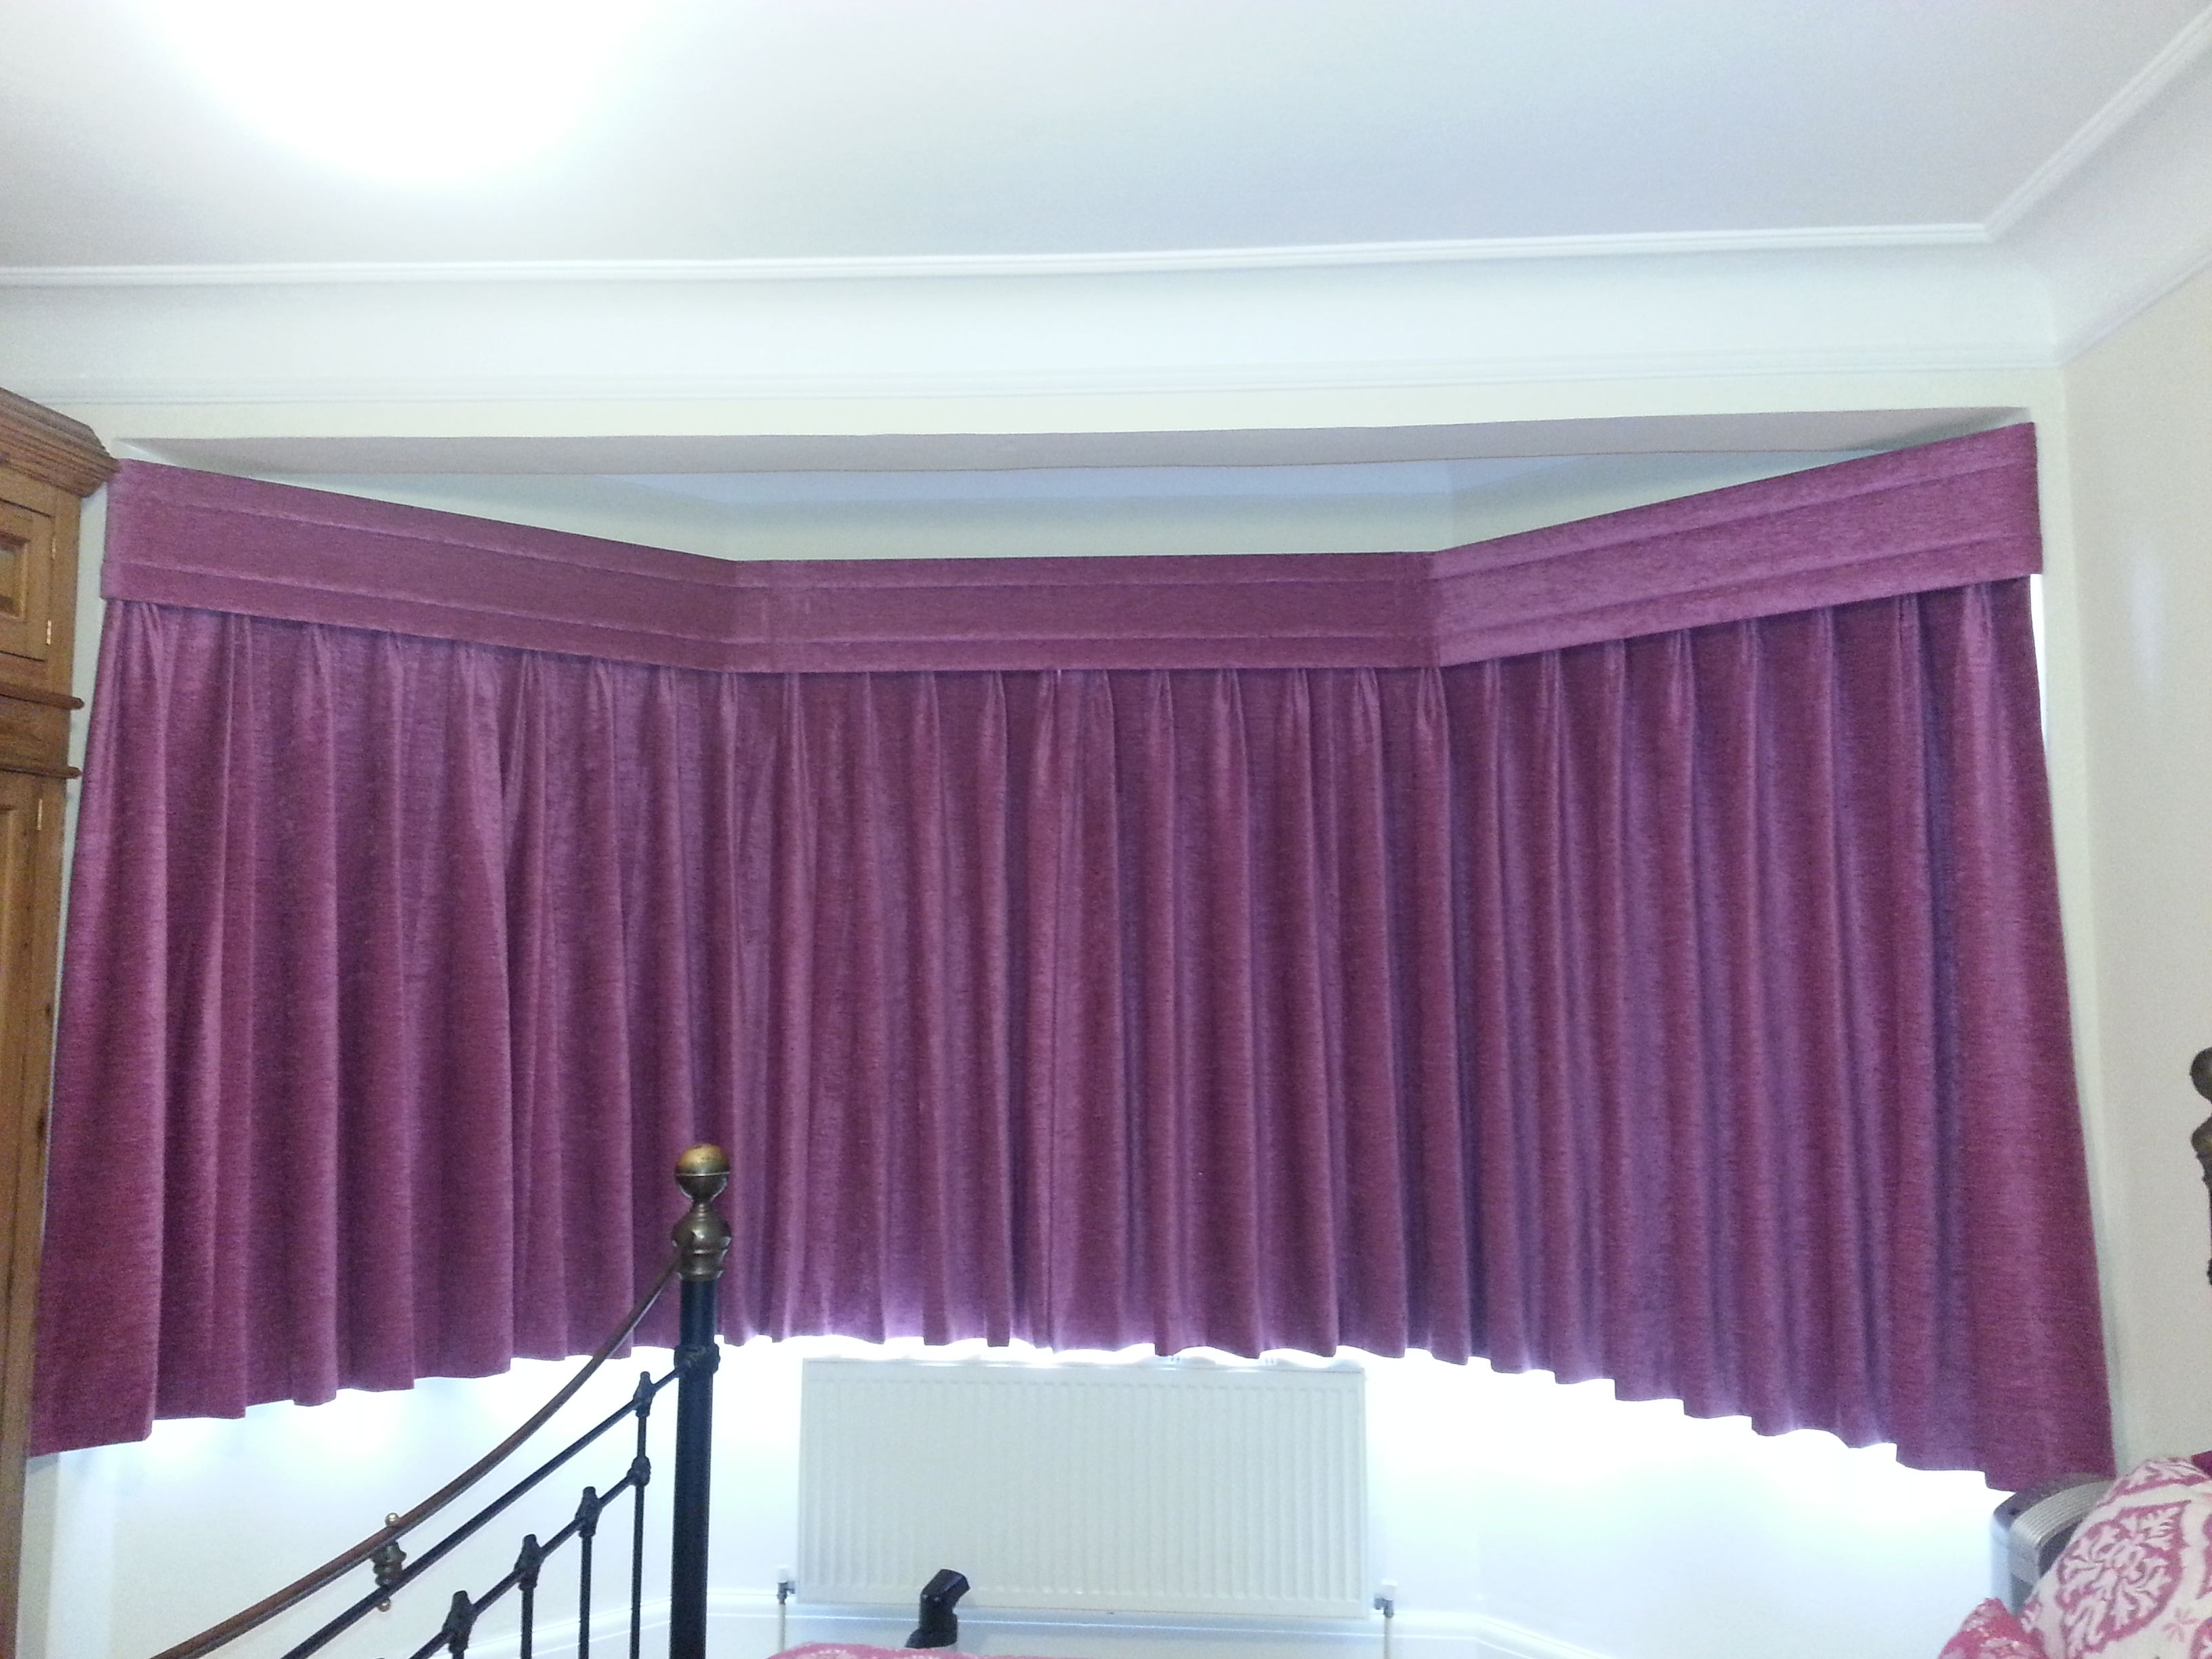 Suspended Purple Curtains by Alf Onnie